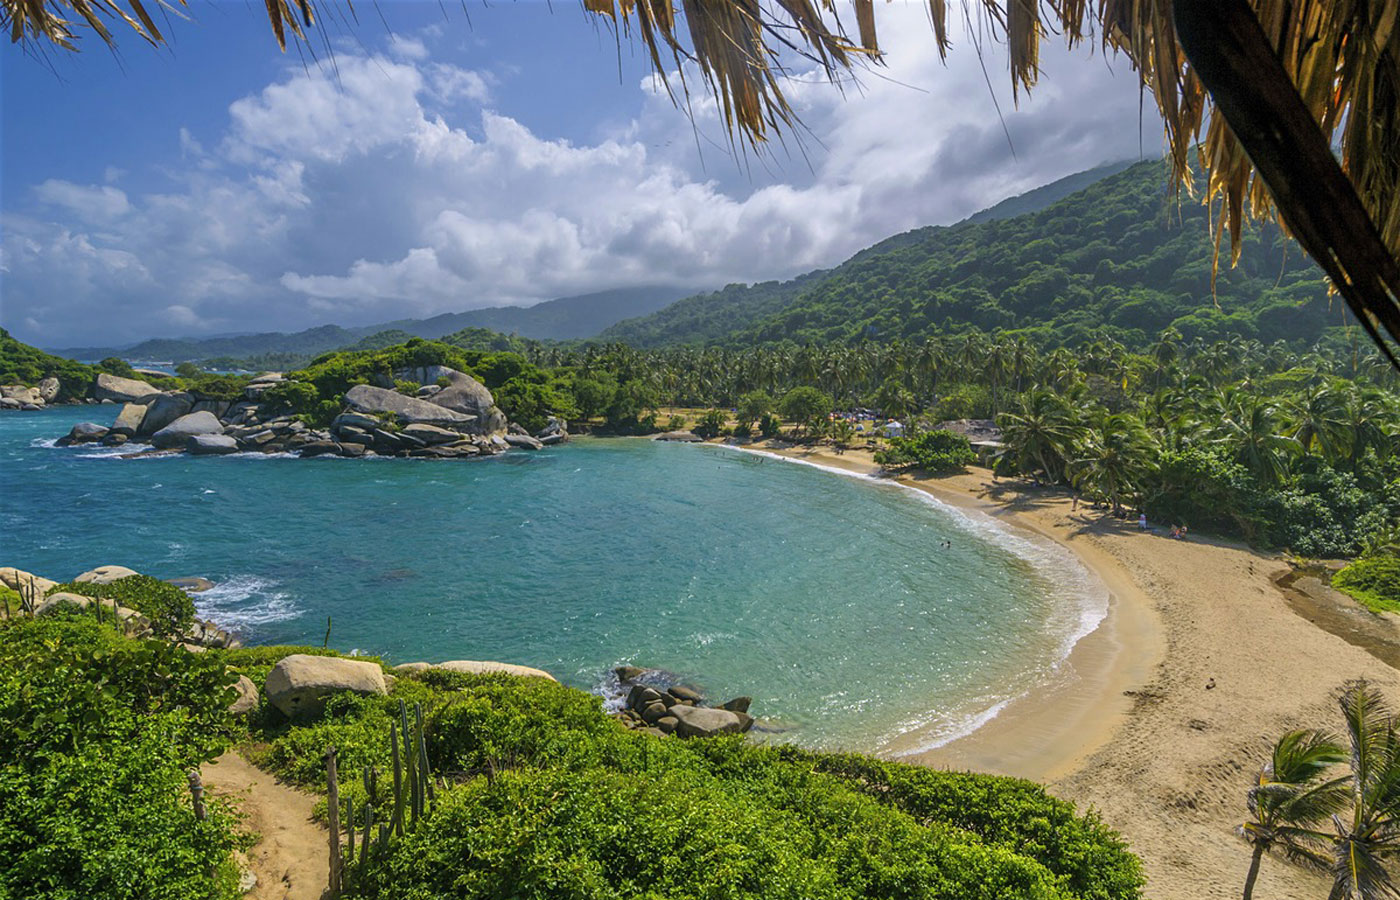 Beautiful beaches in Santa Marta / Tayrona